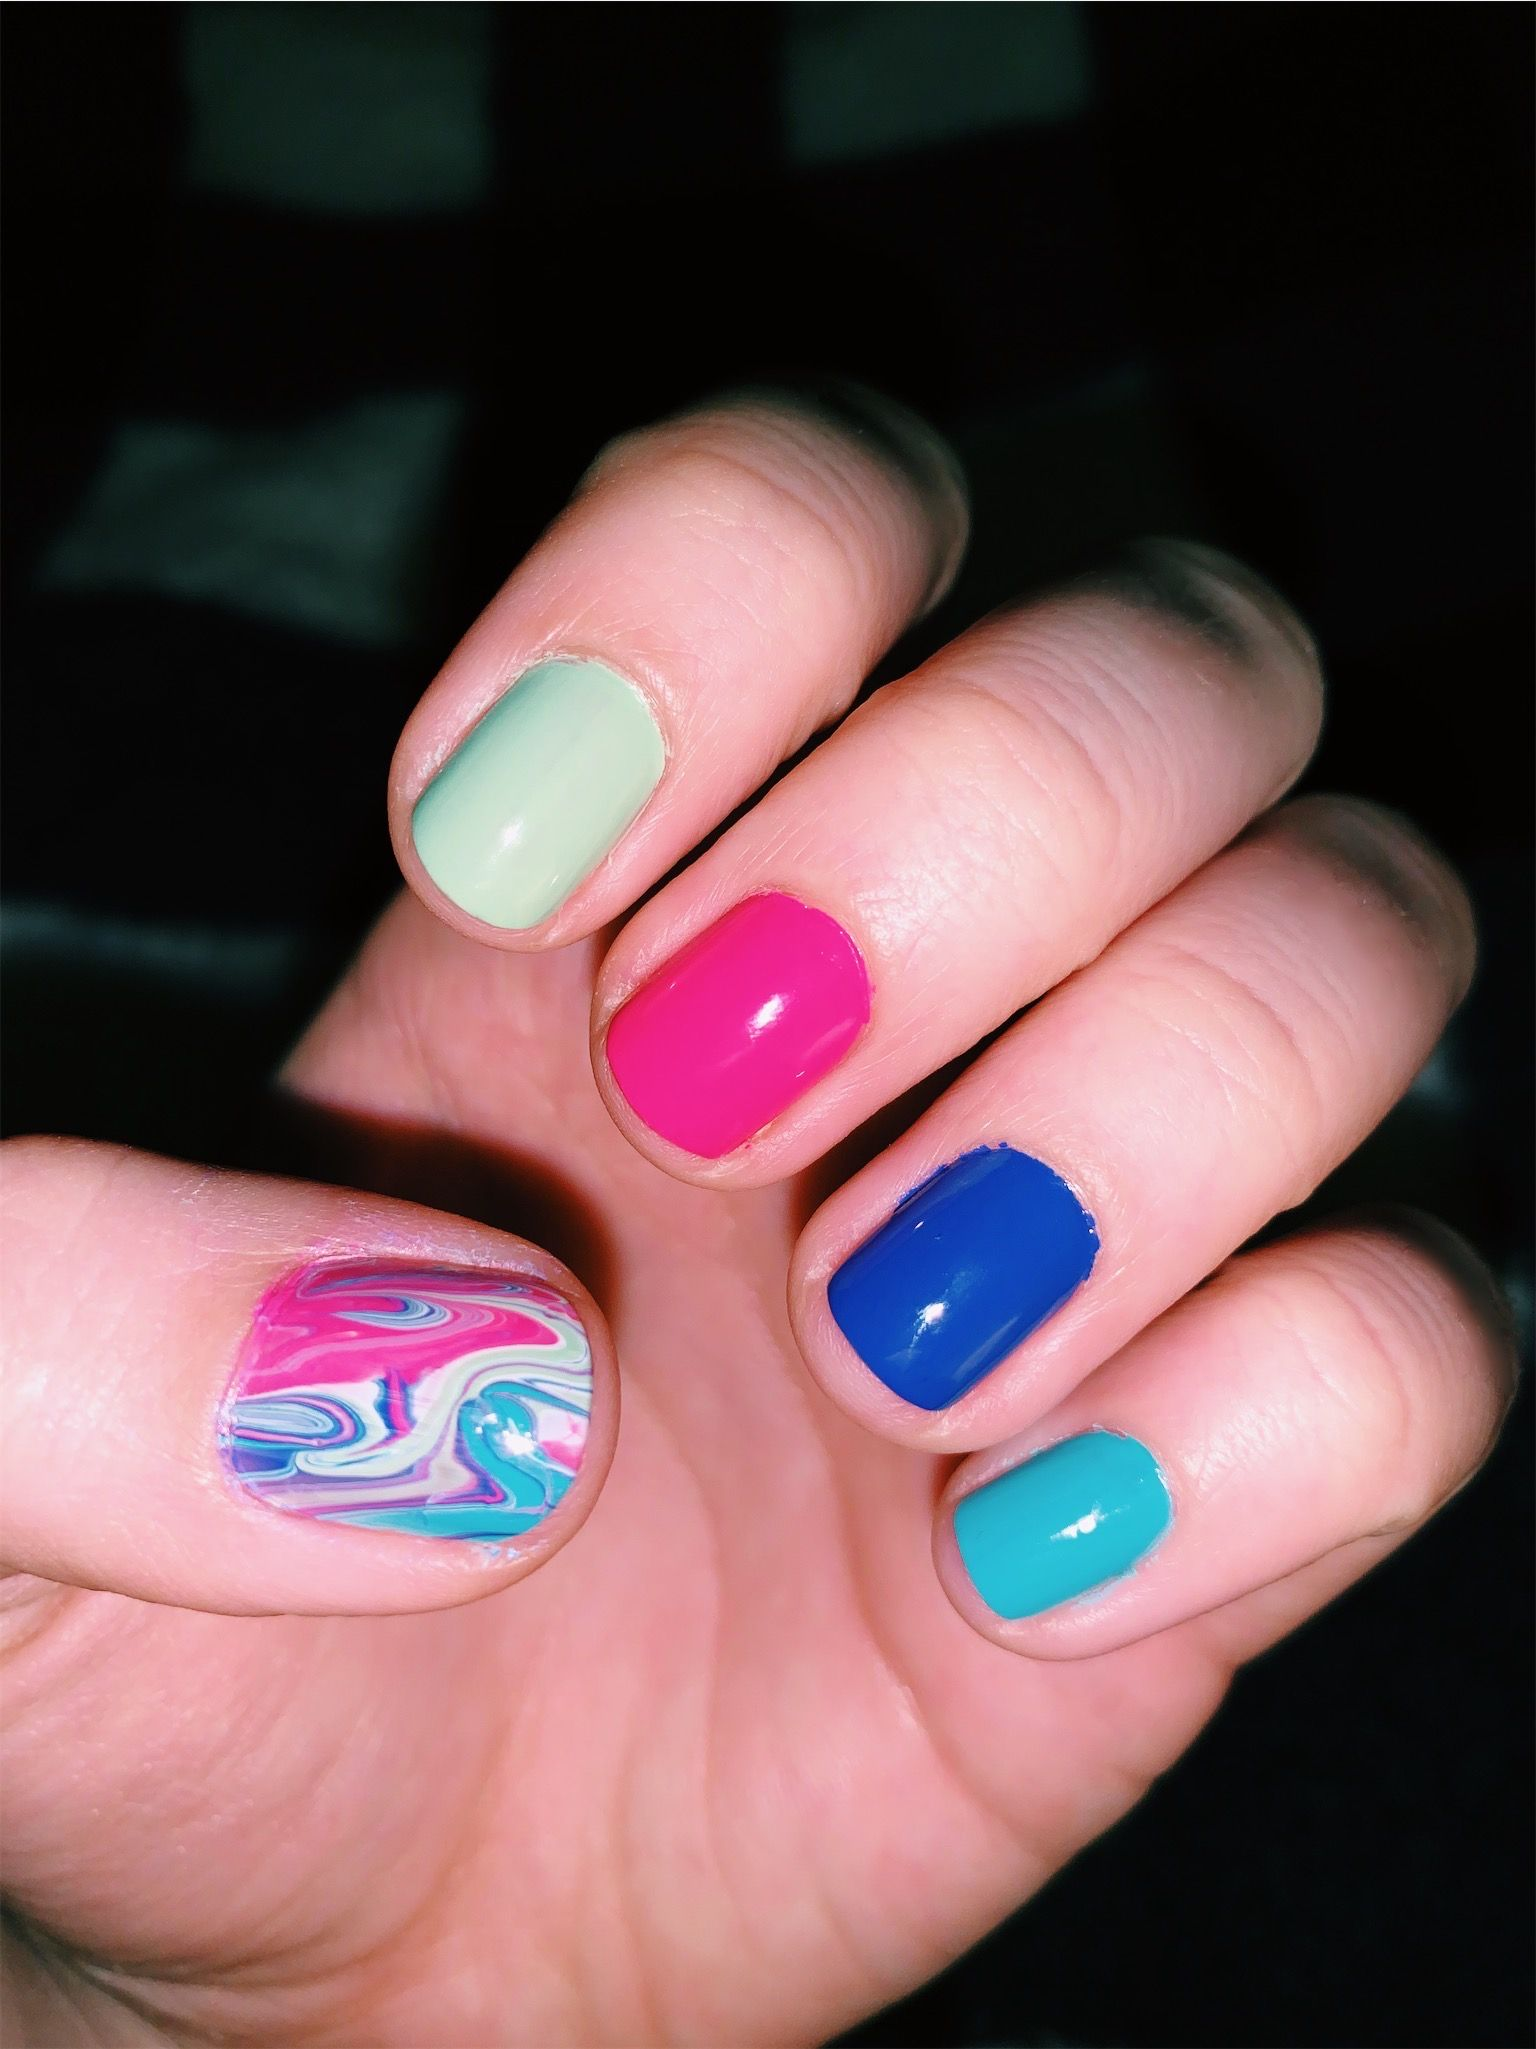 #nails #nailart #diy #watermarble #marble #colorful #popofcolor #accentnails #pop